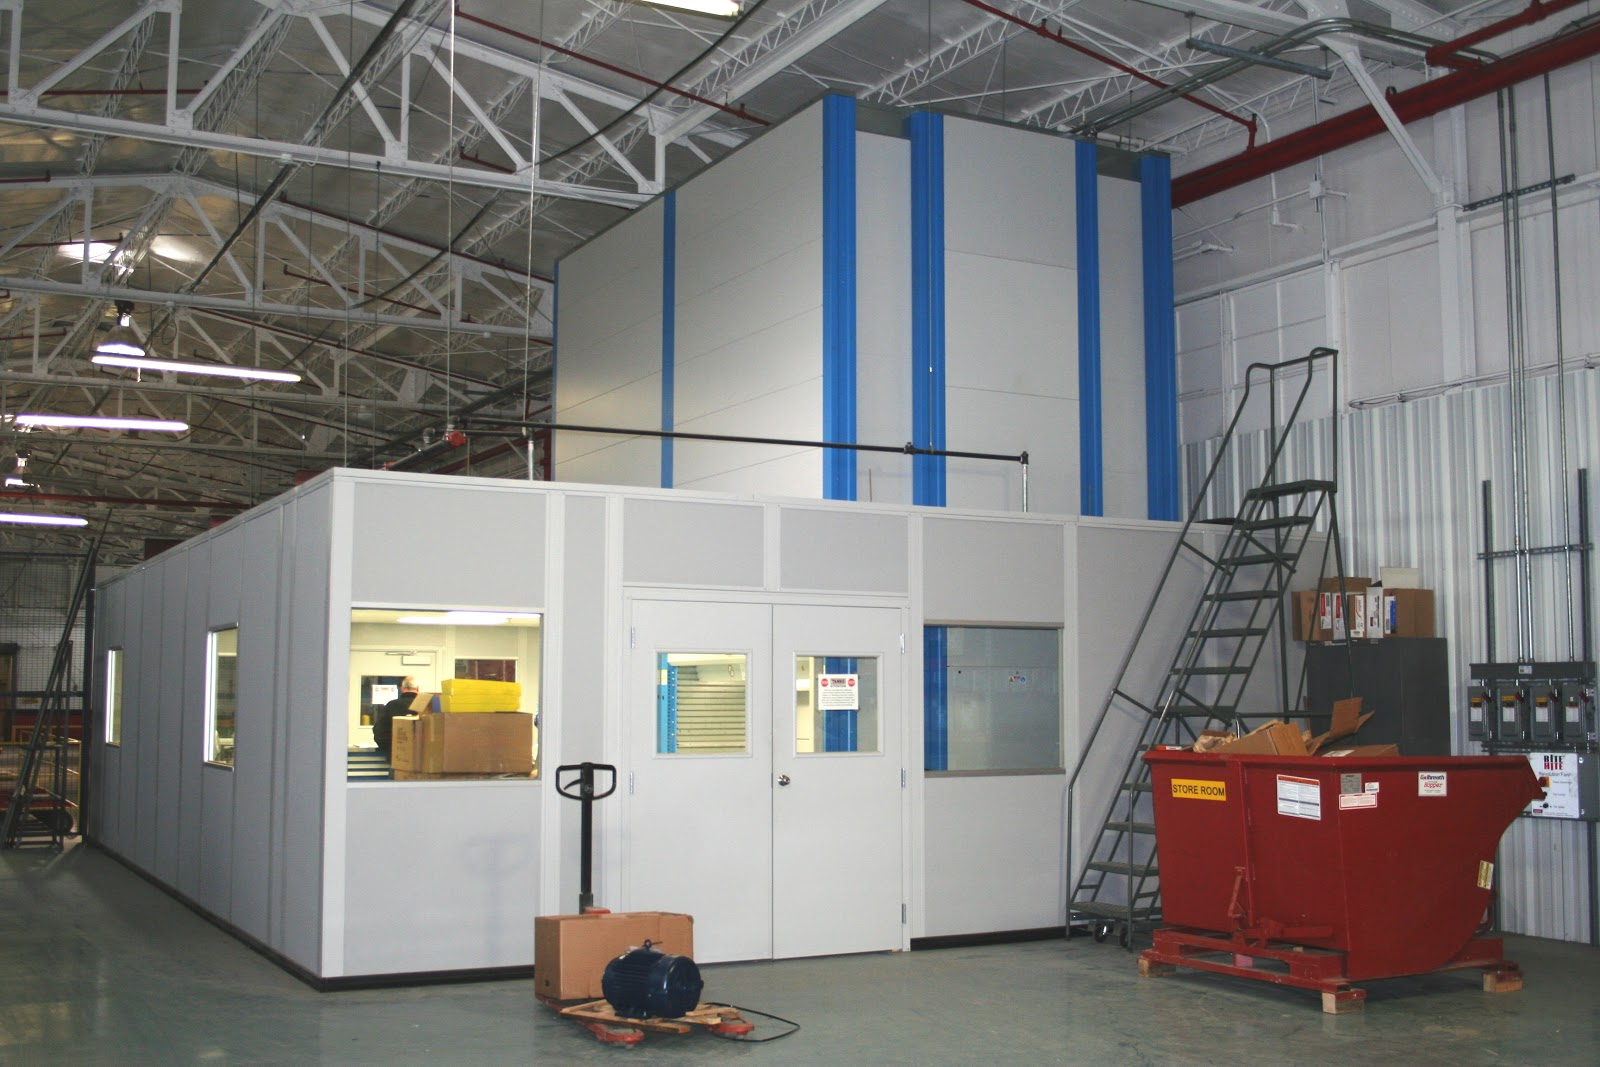 fairfield nj 07004 prefabricated modular inplant offices and guard